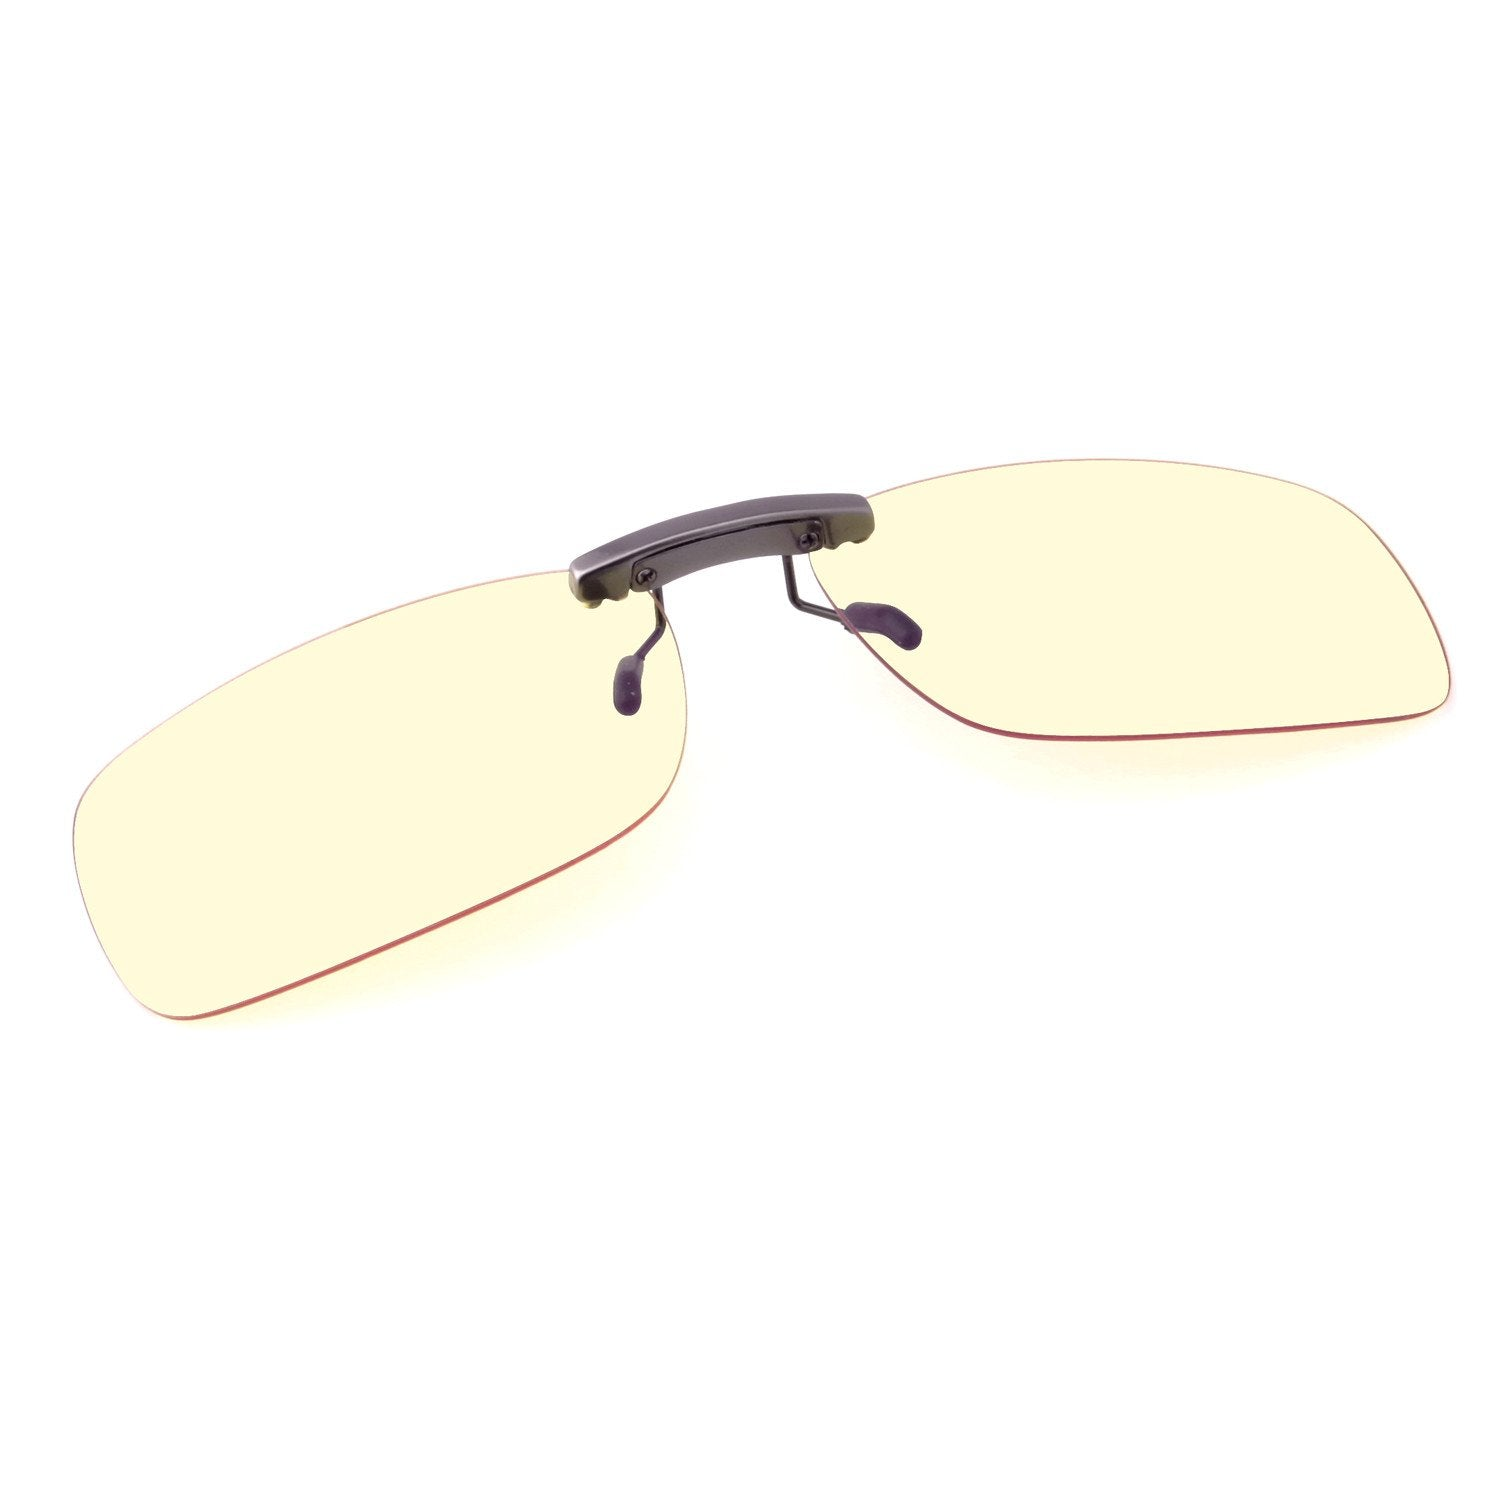 GAMEKINGUltra Clip-On Computer Glasses - CrystalHill